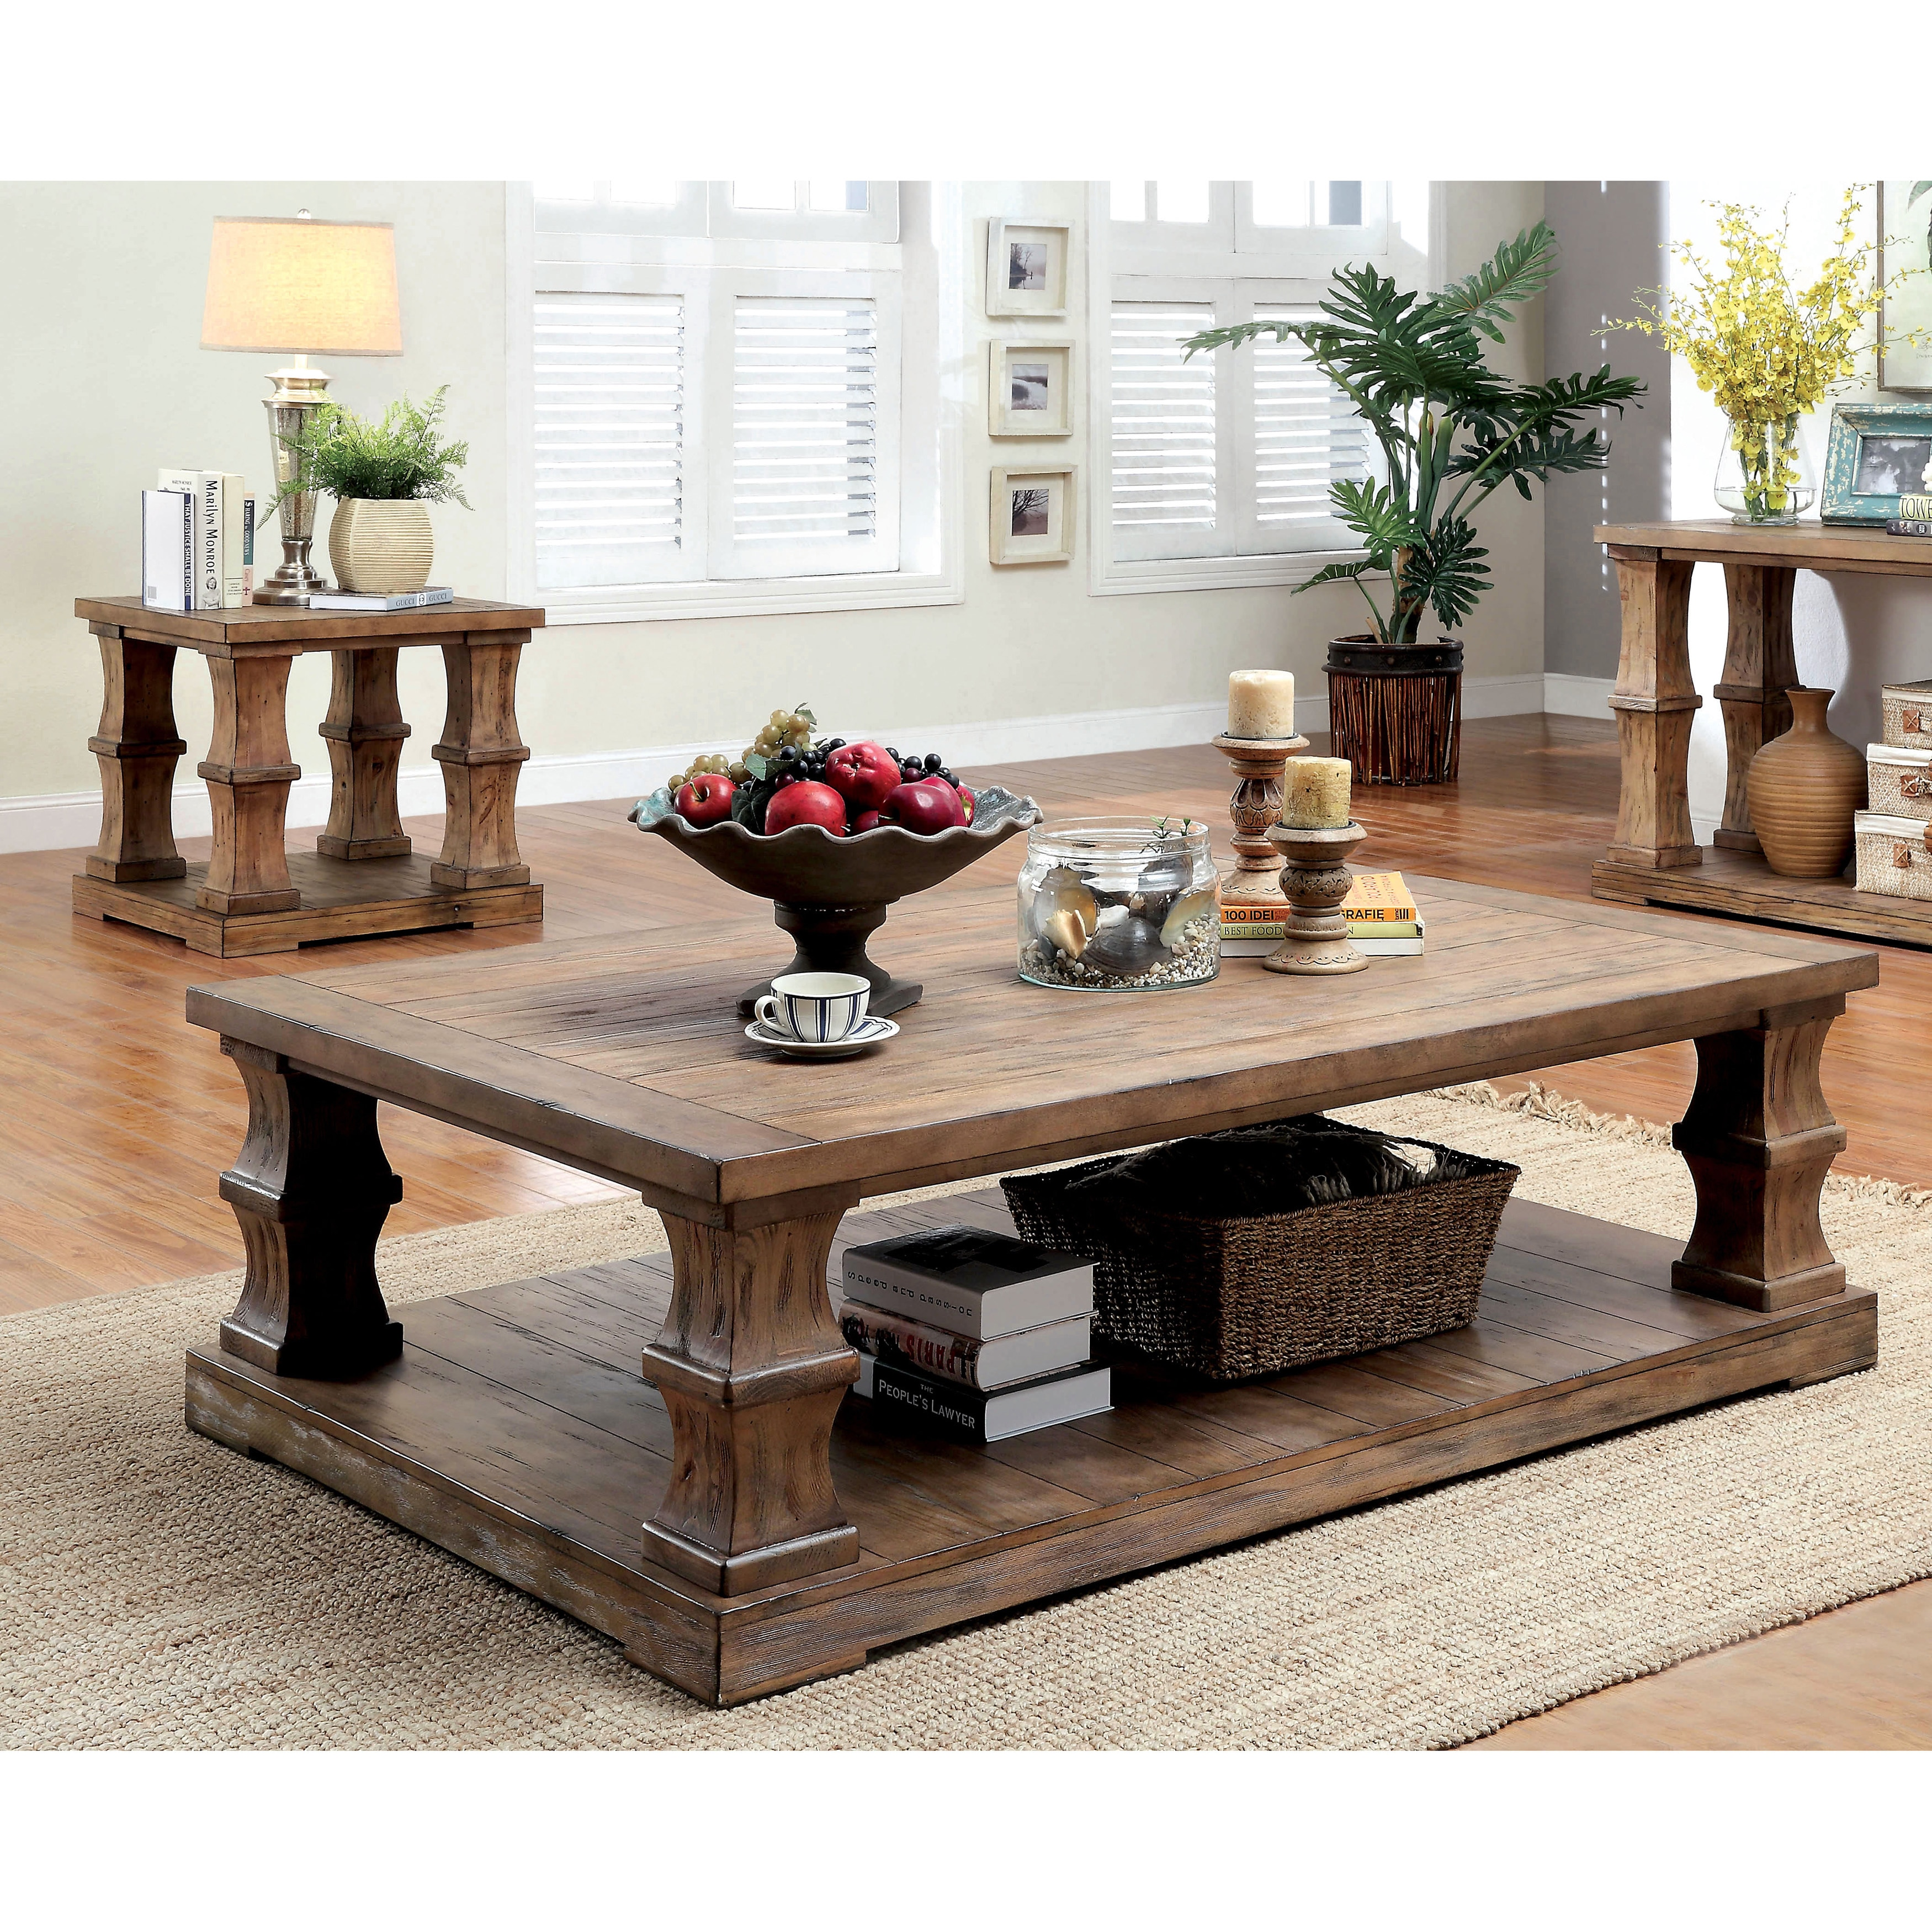 Furniture Of America Temecula I Shabby Chic 2 Piece Natural Tone Distressed  Coffee And End Table Set   Free Shipping Today   Overstock   19944880